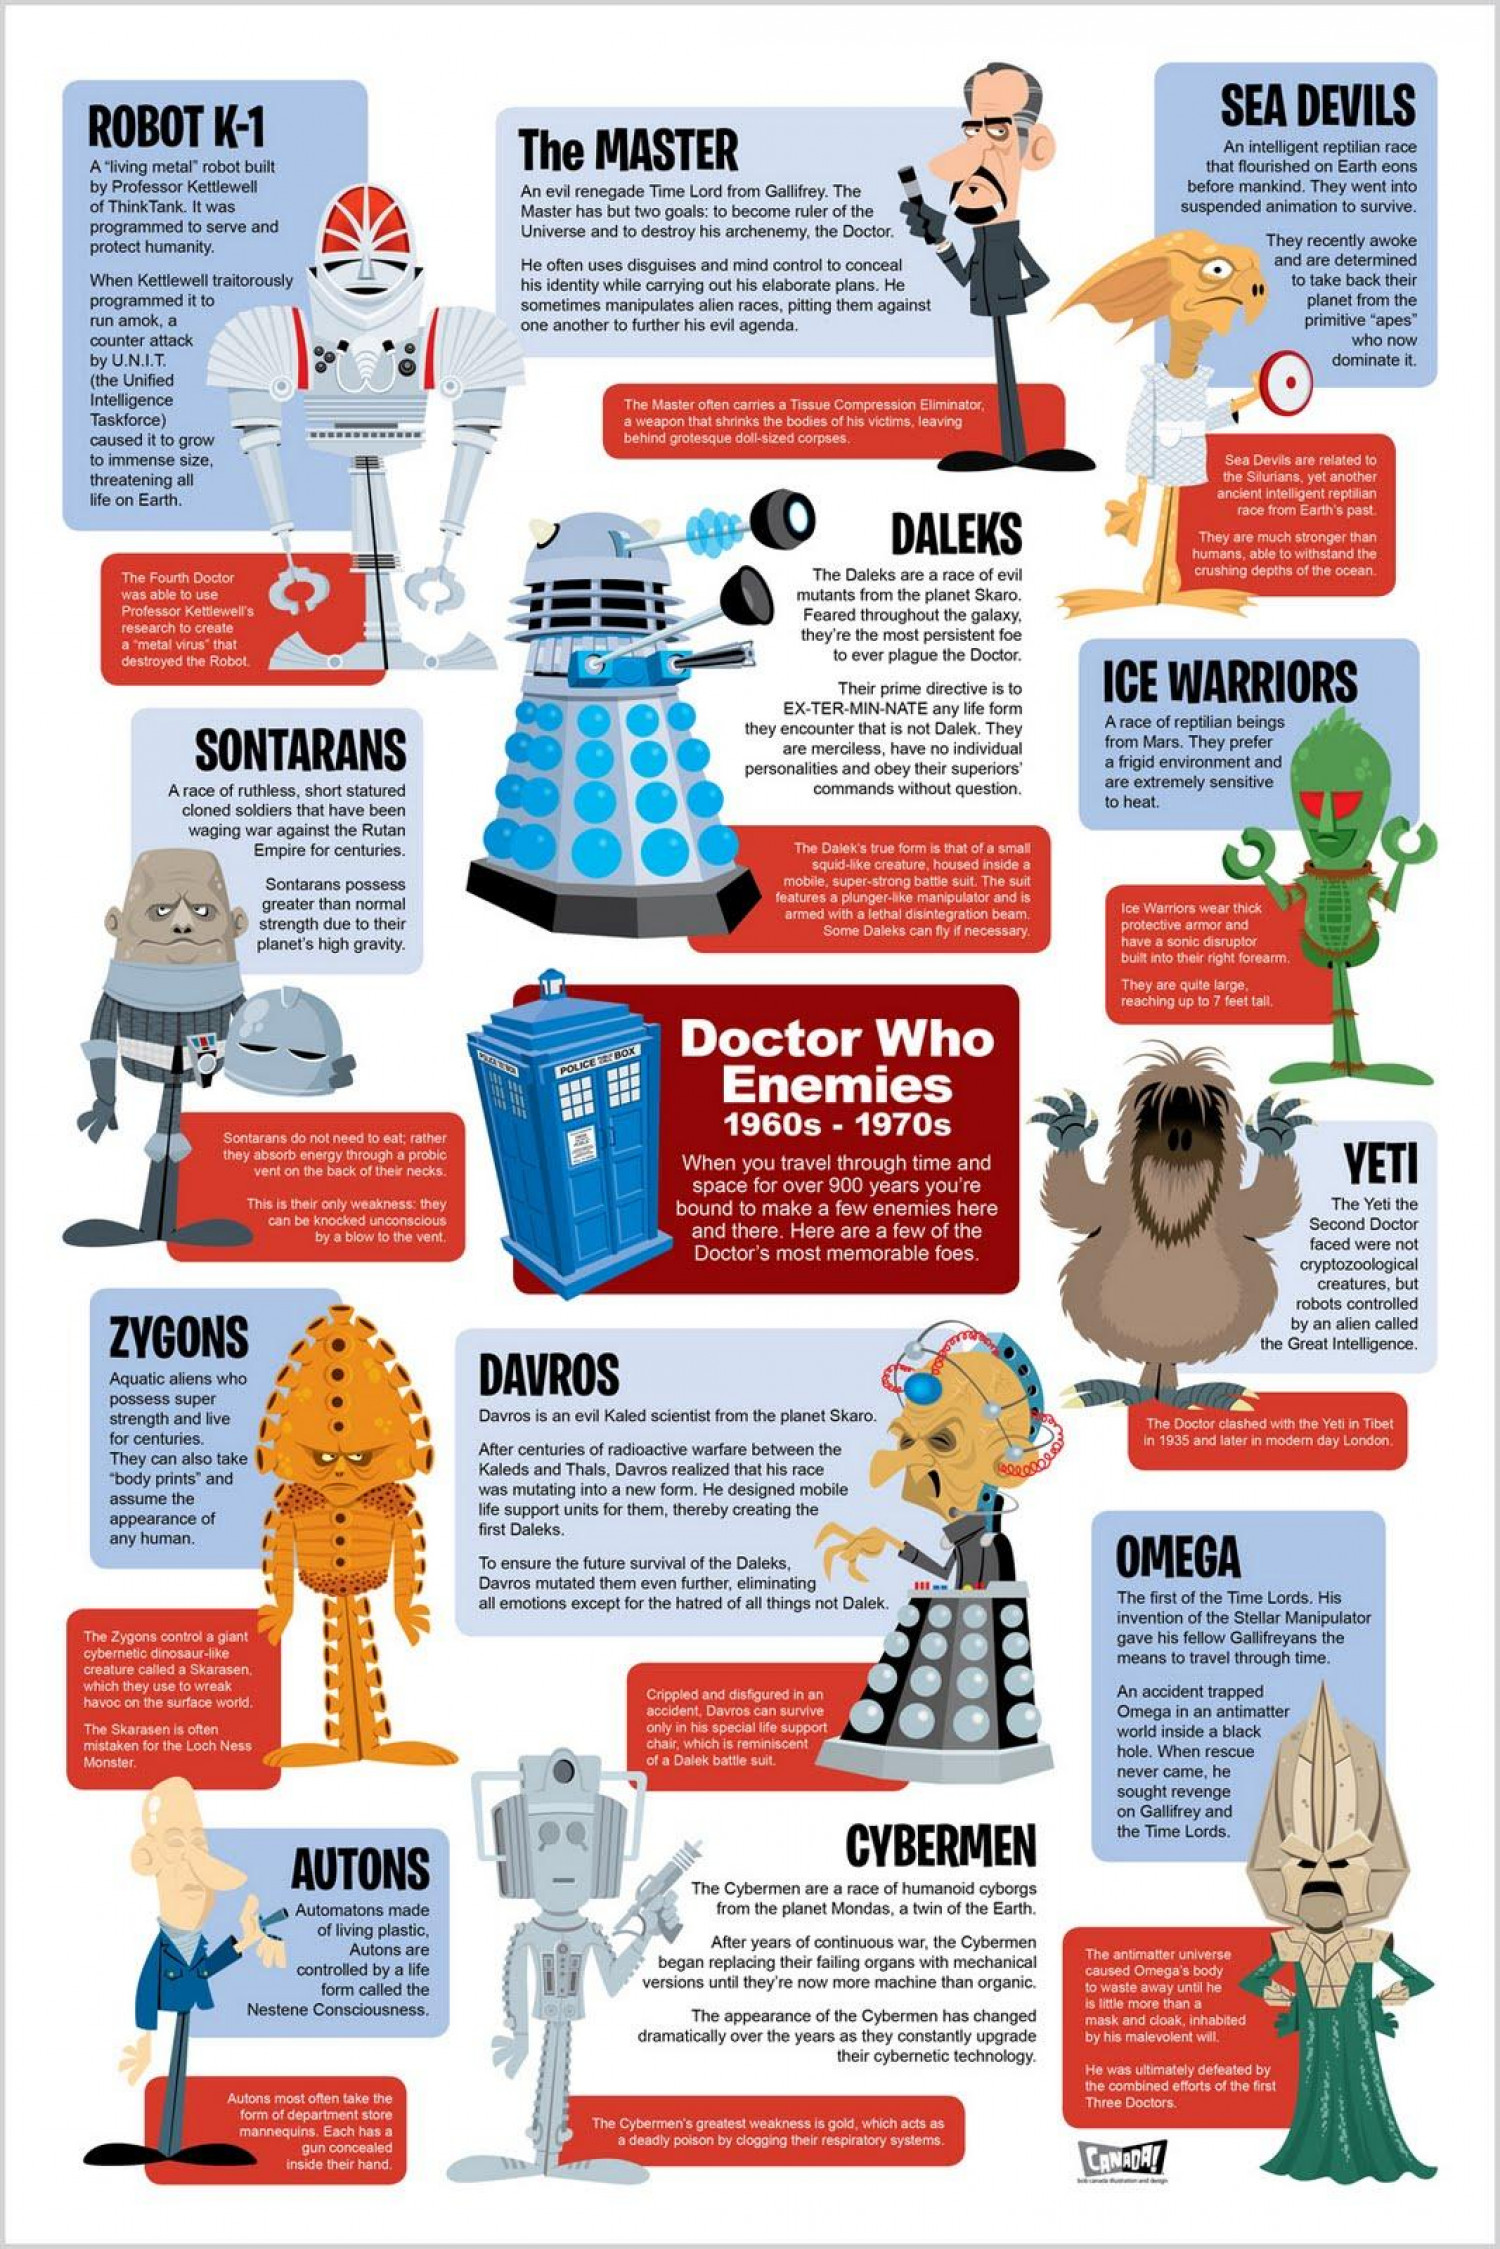 Doctor Who Enemies 1960s-1970s Infographic